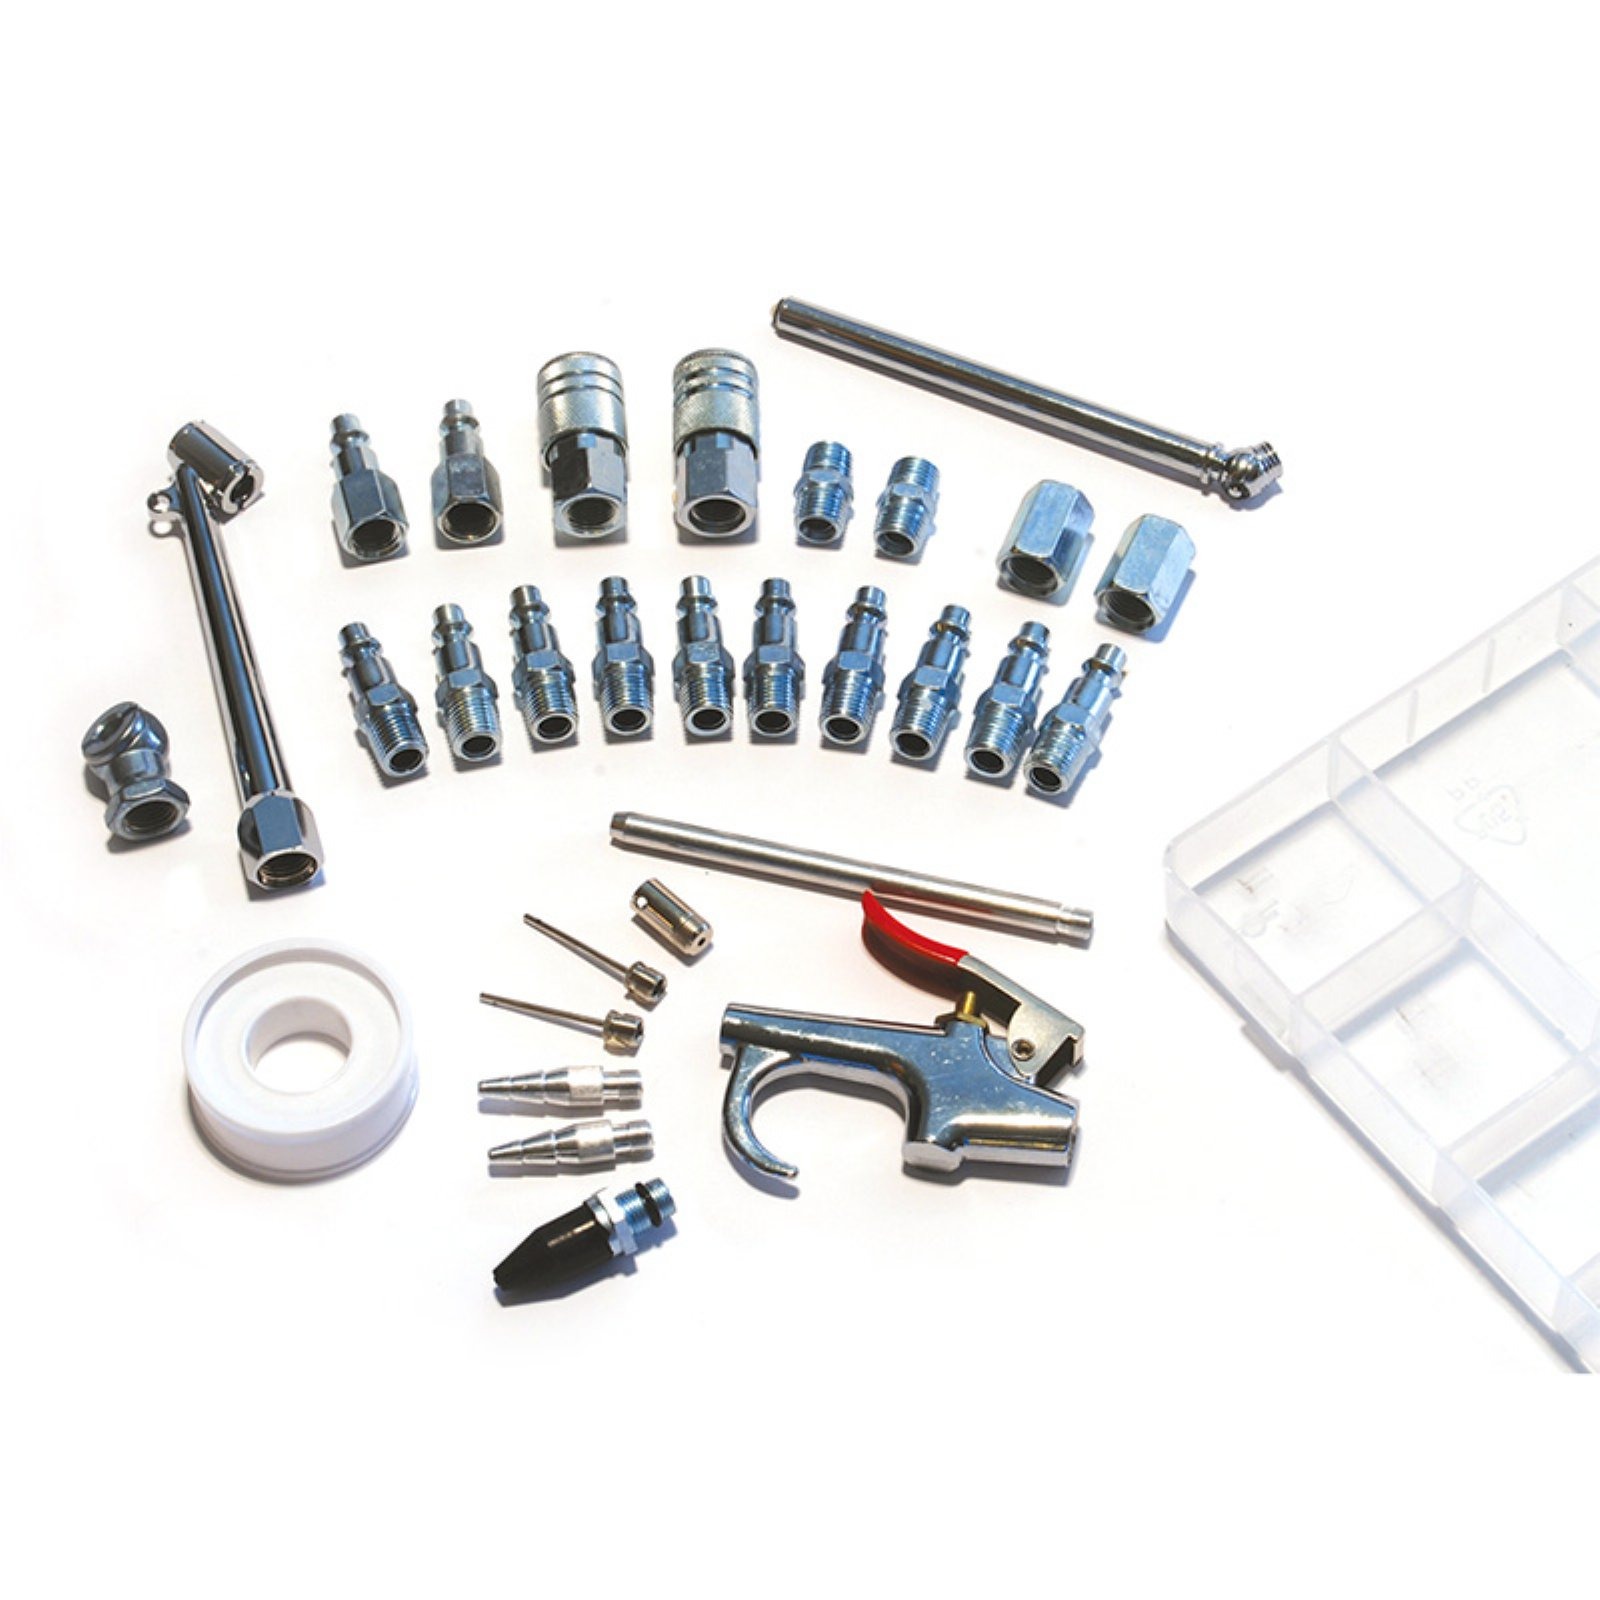 PrimeFit 30-Piece Air Compressor Accessory Kit